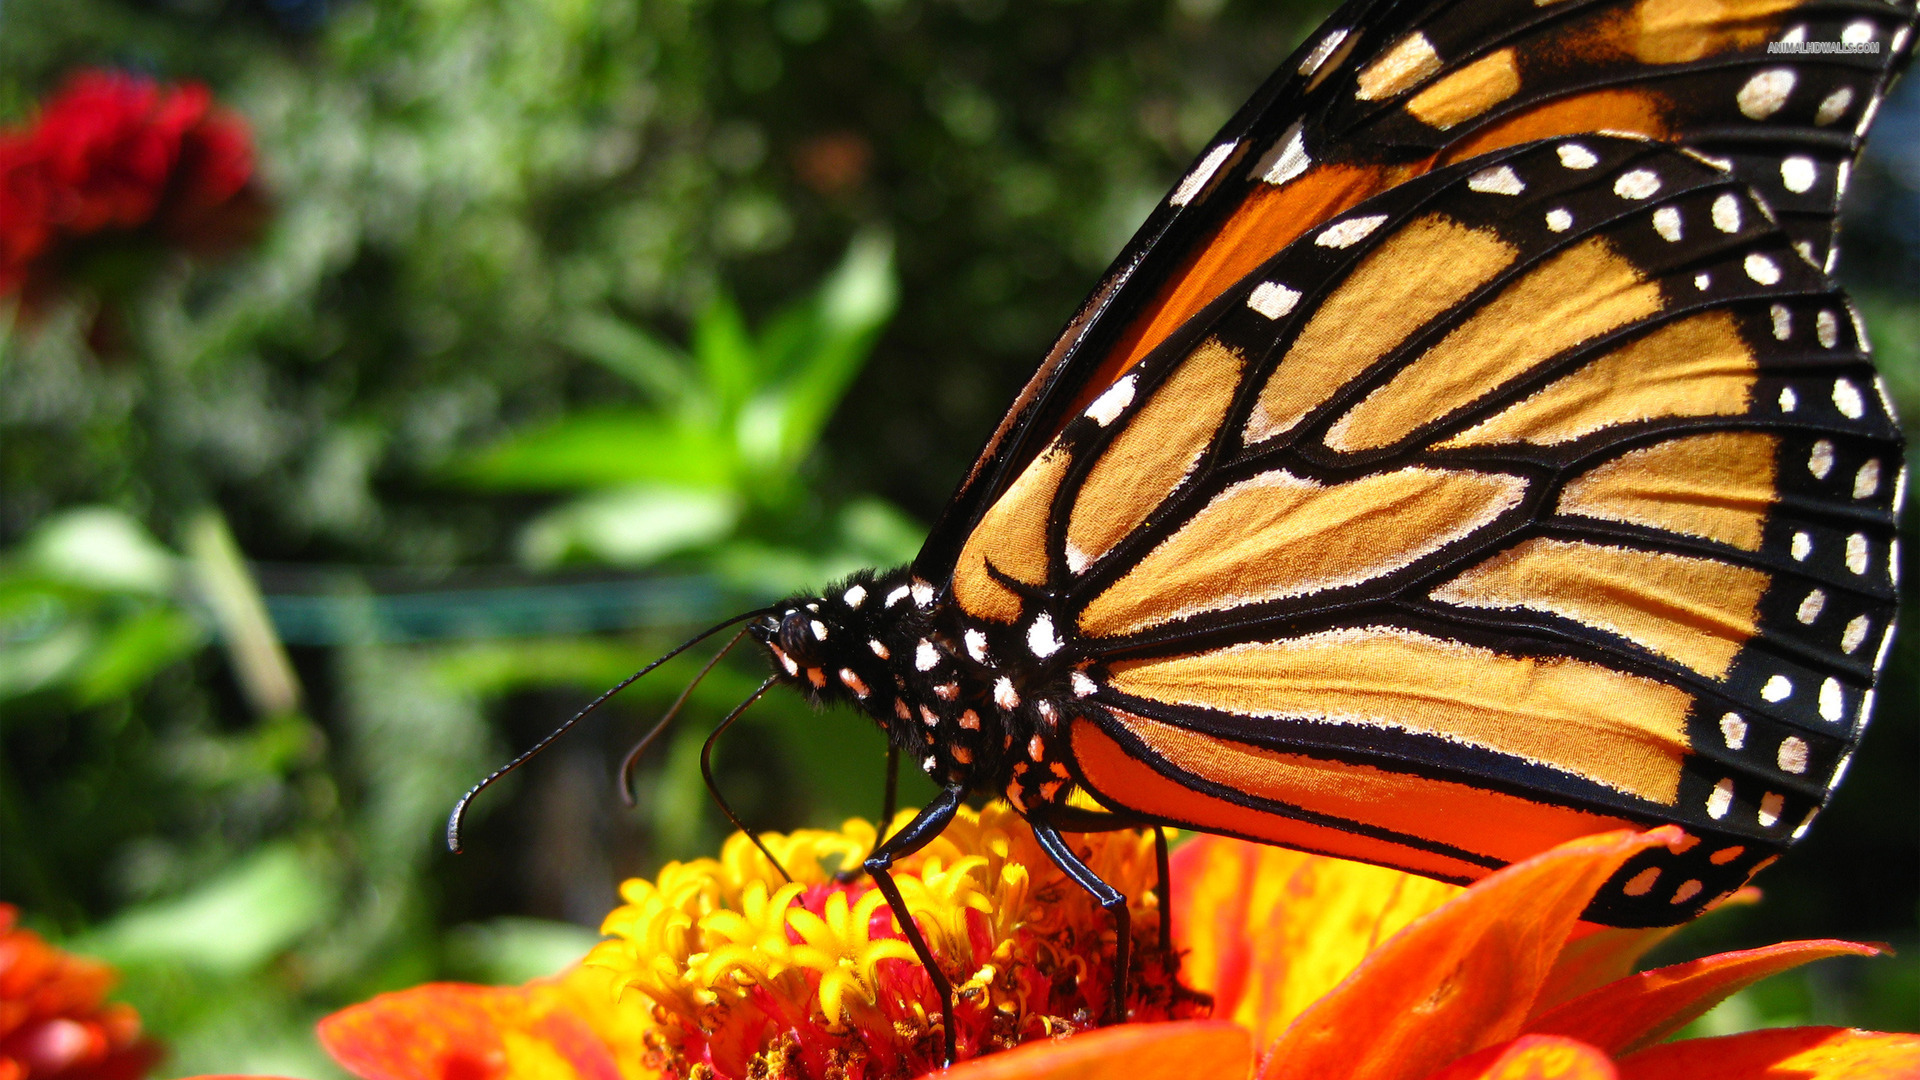 Wonderful-Monarch-Butterfly-Yellow-Flowers-Outdoor-Picture-HD-PC-Widescreen-wallpaper-wpc58010408